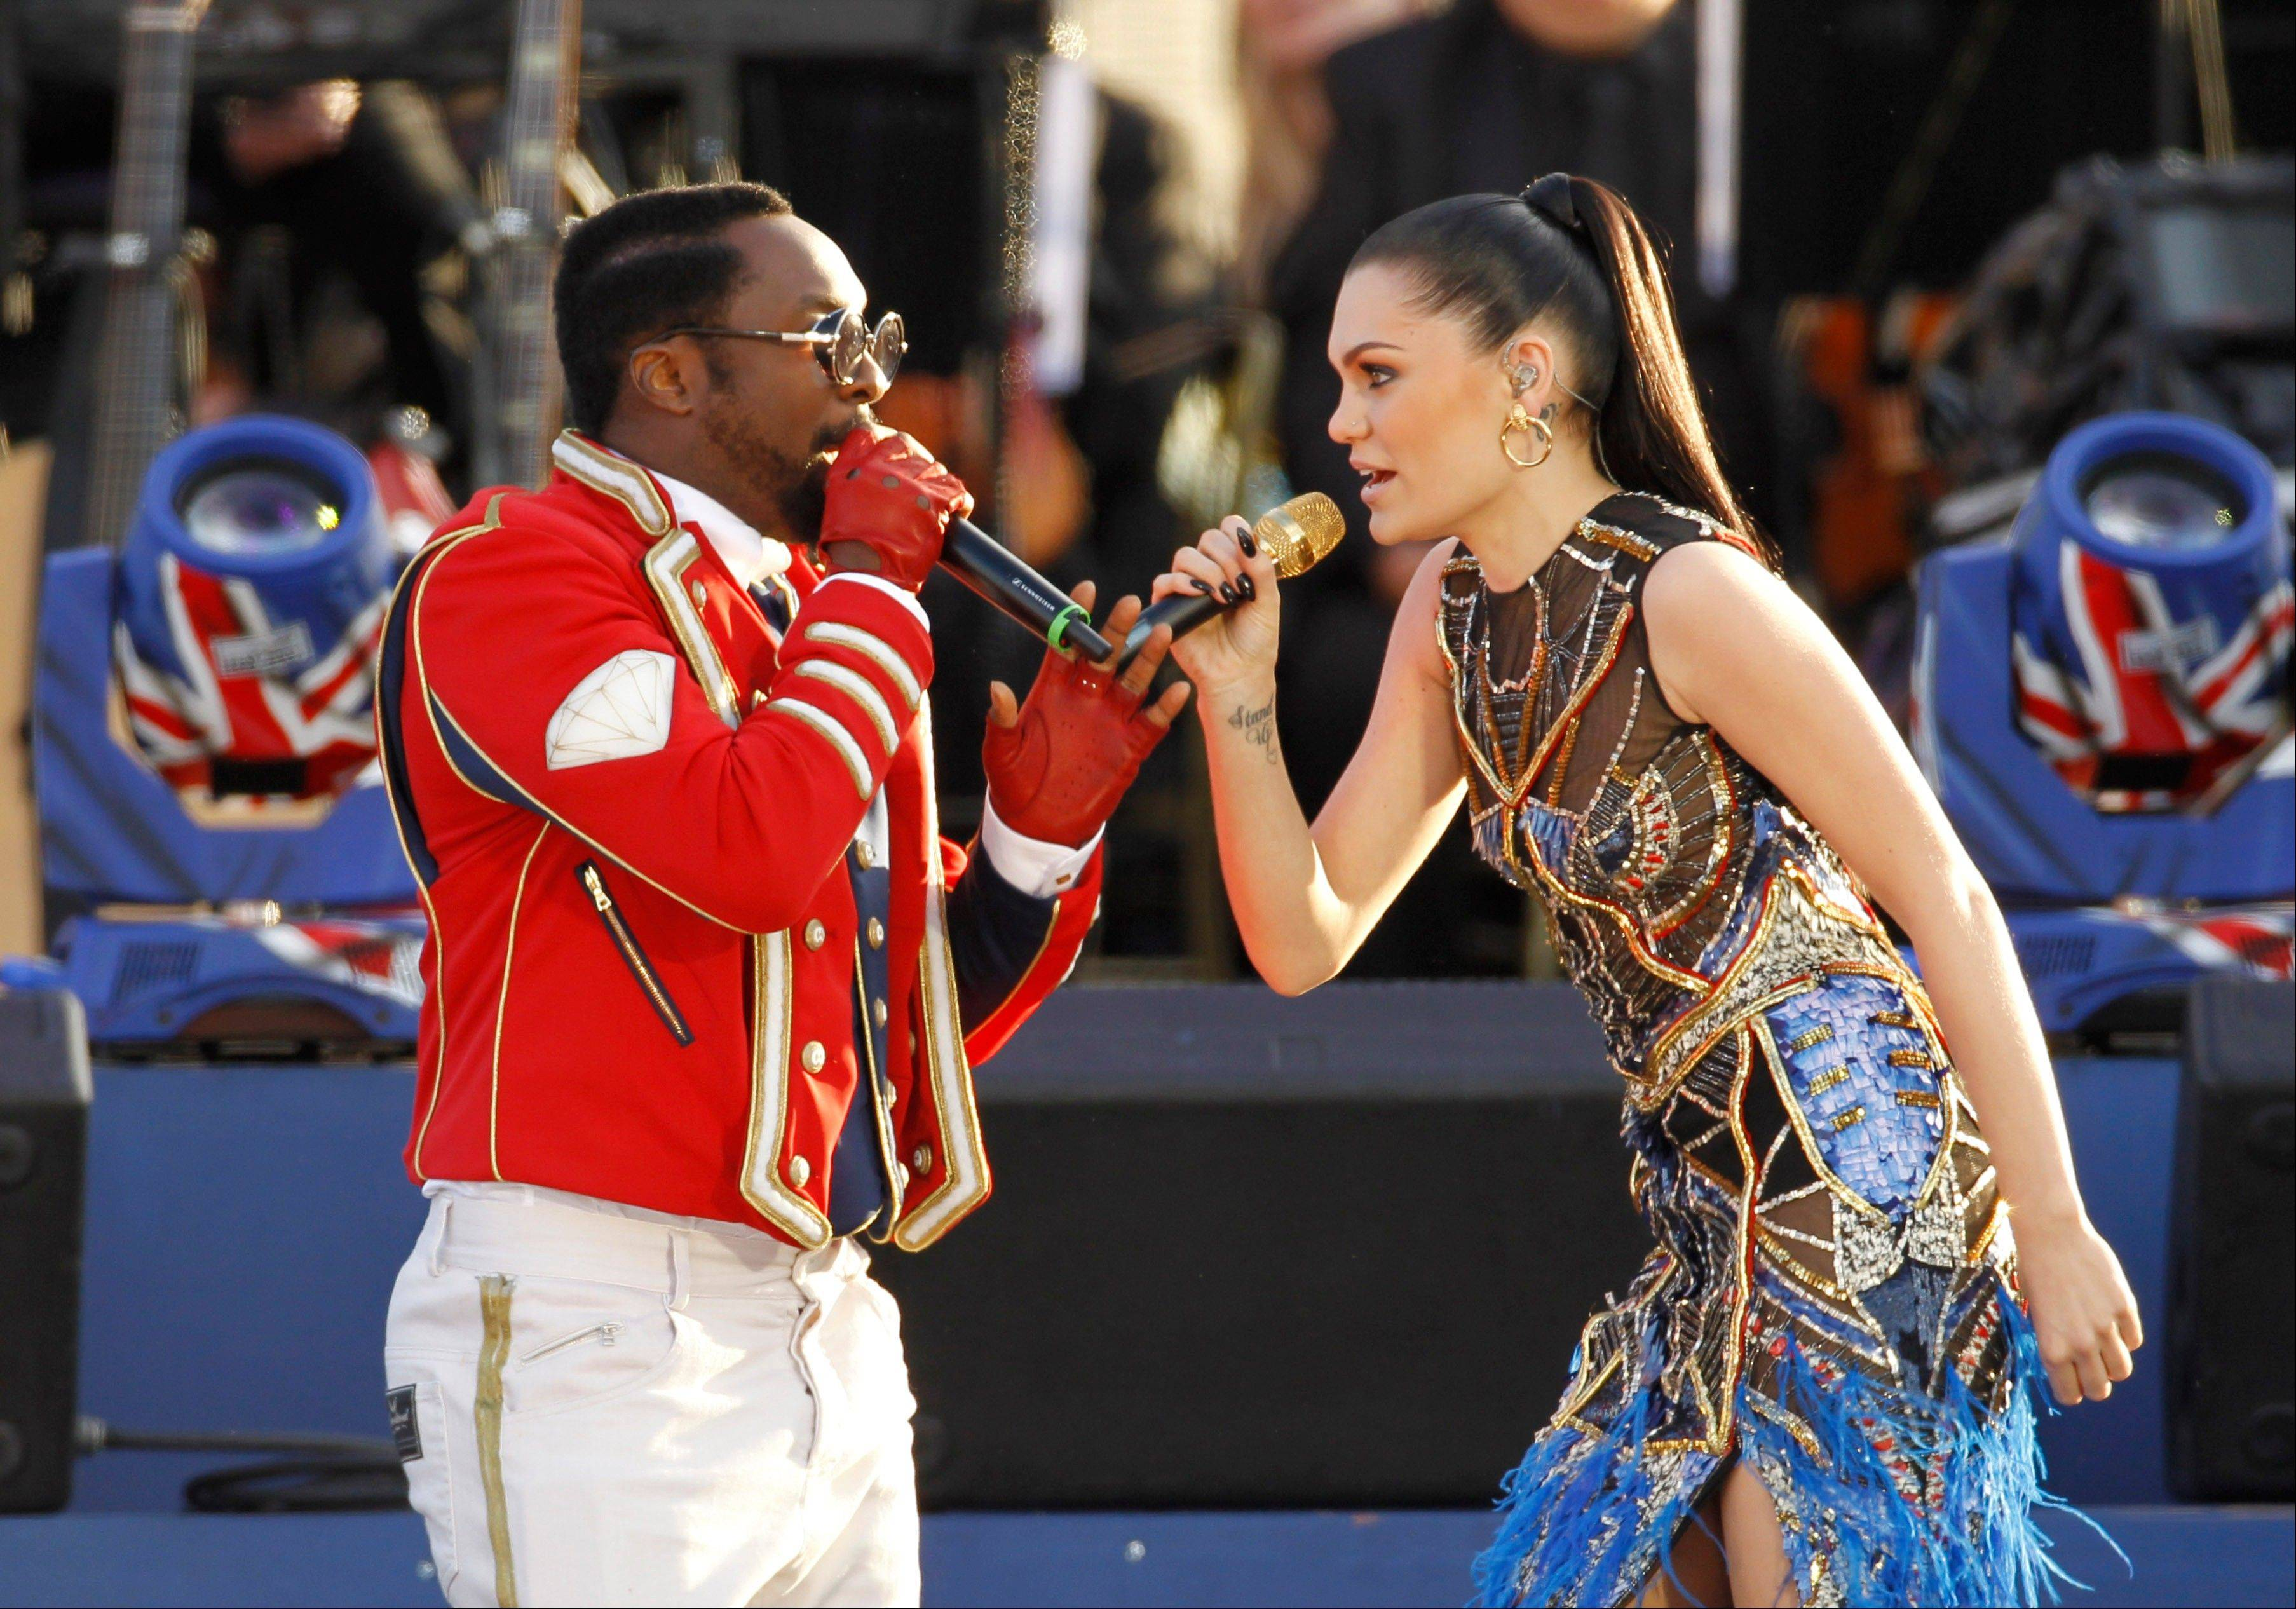 Will.I.am and Jessie J perform at the Queen's Jubilee Concert in front of Buckingham Palace, London, Monday, June 4, 2012. The concert is a part of four days of celebrations to mark the 60-year reign of Britain's Queen Elizabeth II.